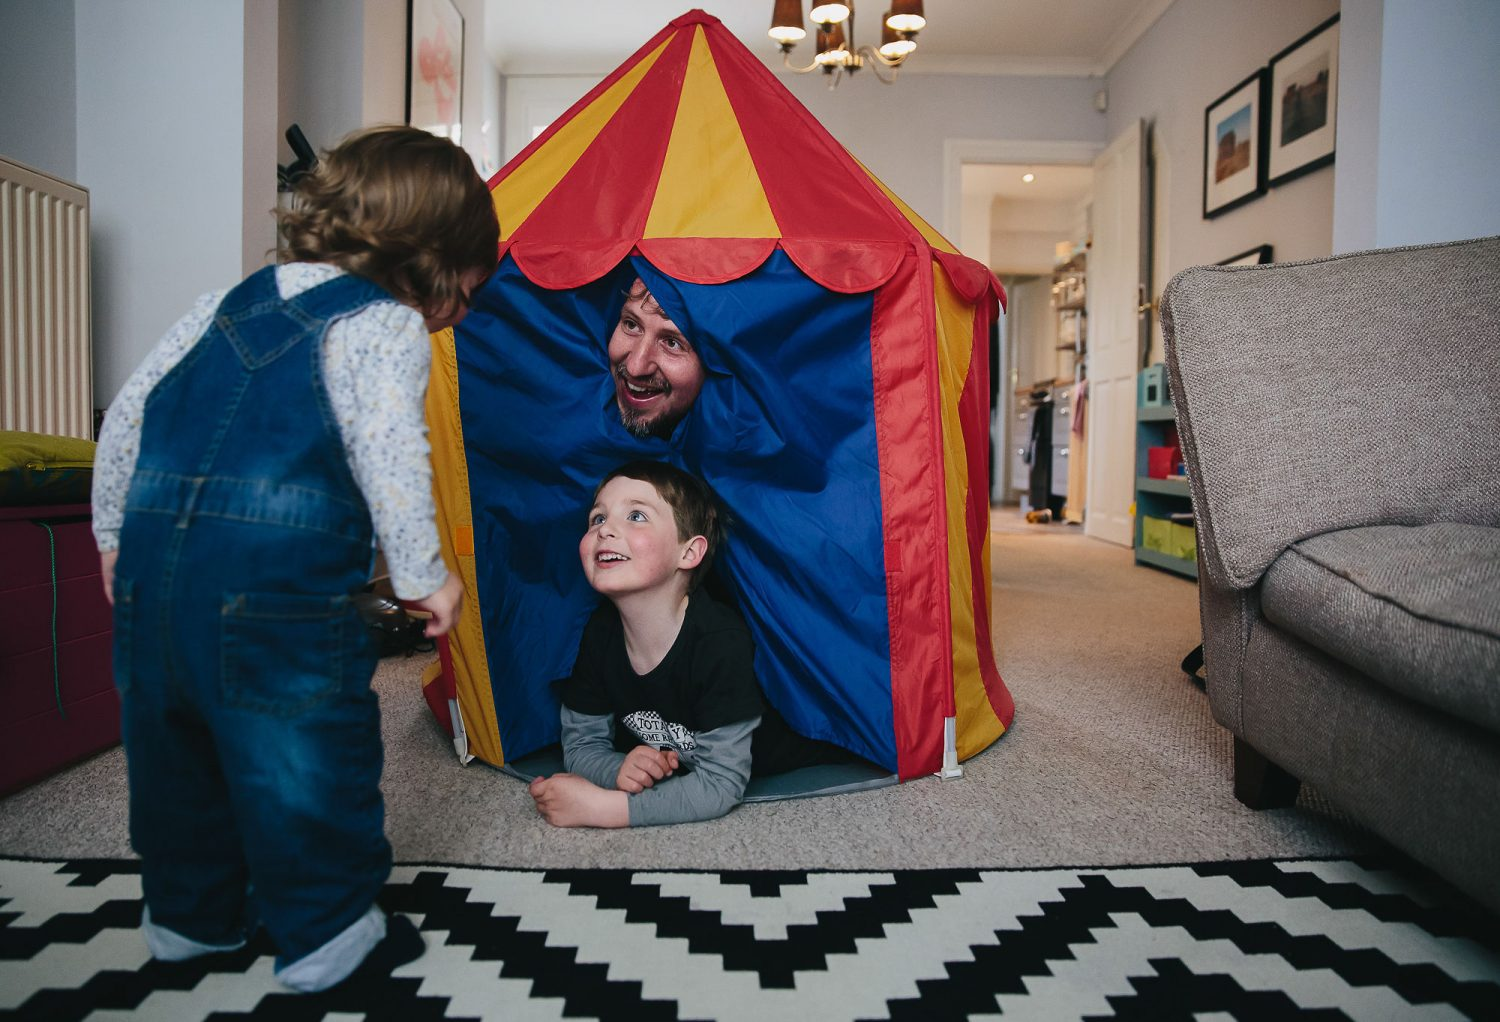 day in the life photography dad playing in tent with two young children indoors